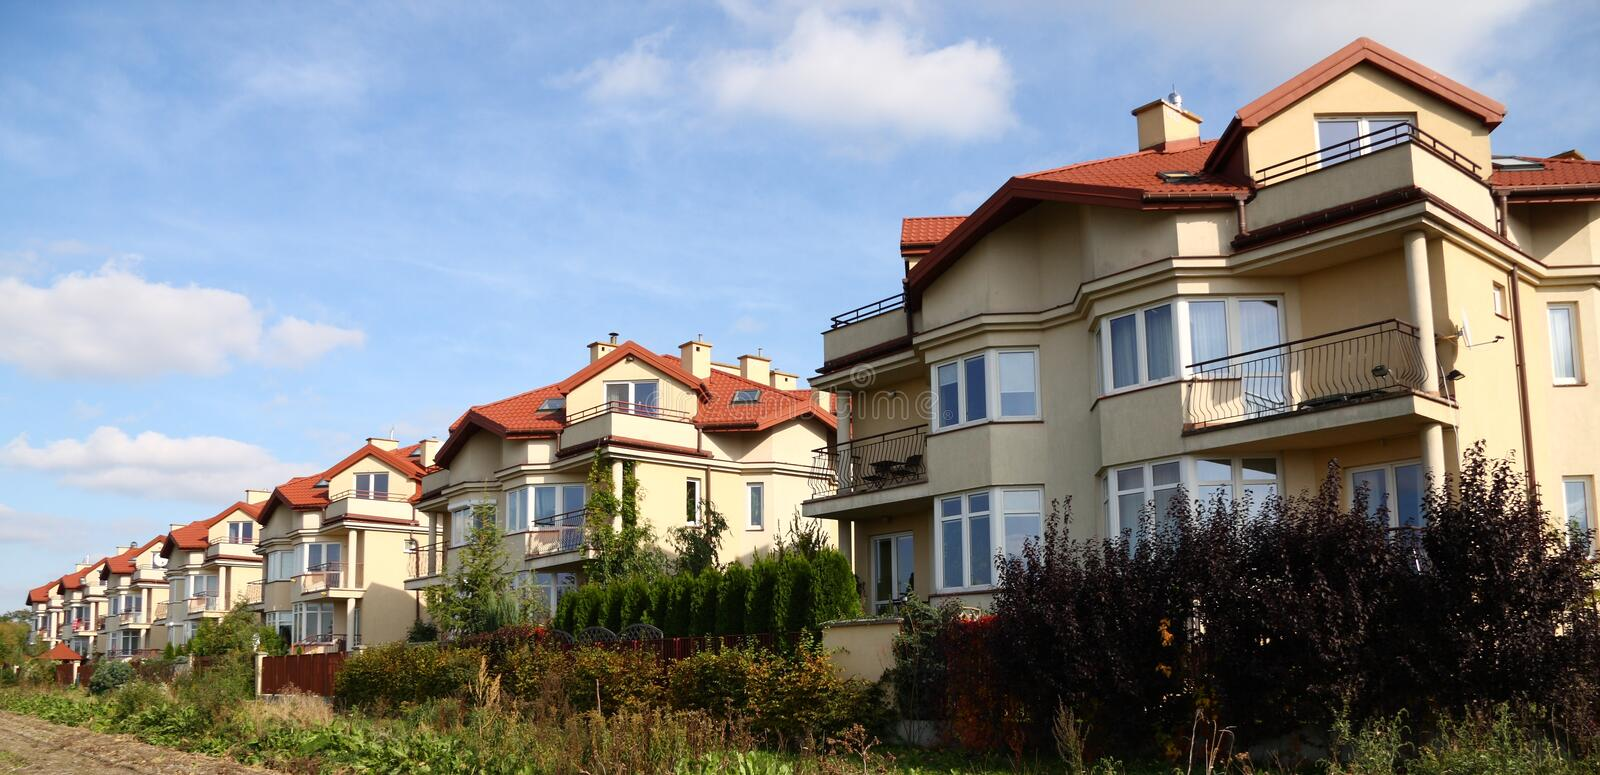 Download Row Of Similar Houses Royalty Free Stock Image - Image: 6685156